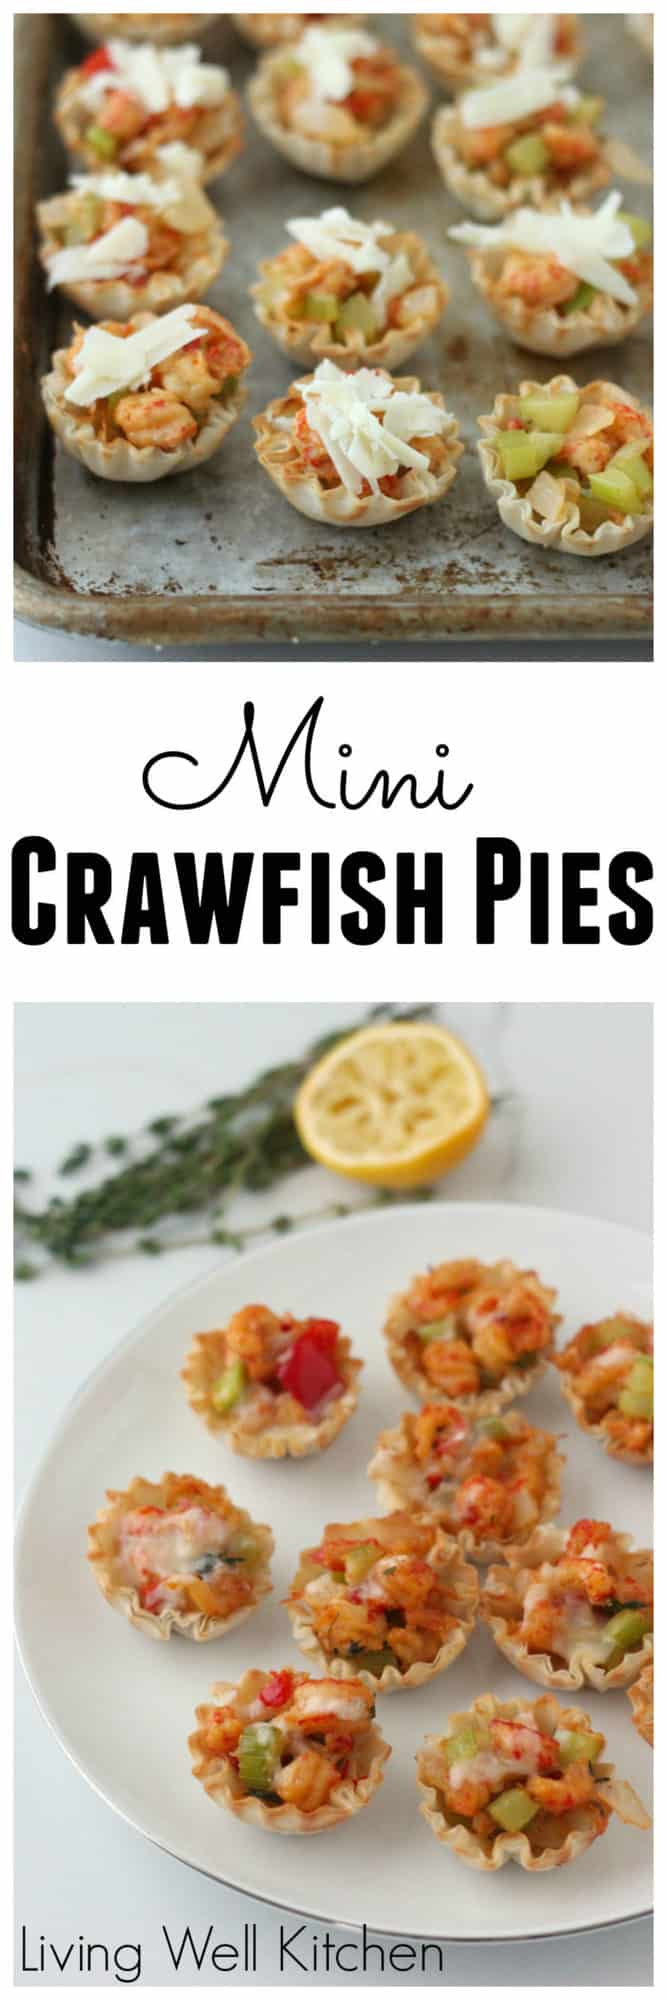 Revamped Mini Crawfish Pies are adorable bites of cajun deliciousness. The perfect recipe for an appetizer or party snack